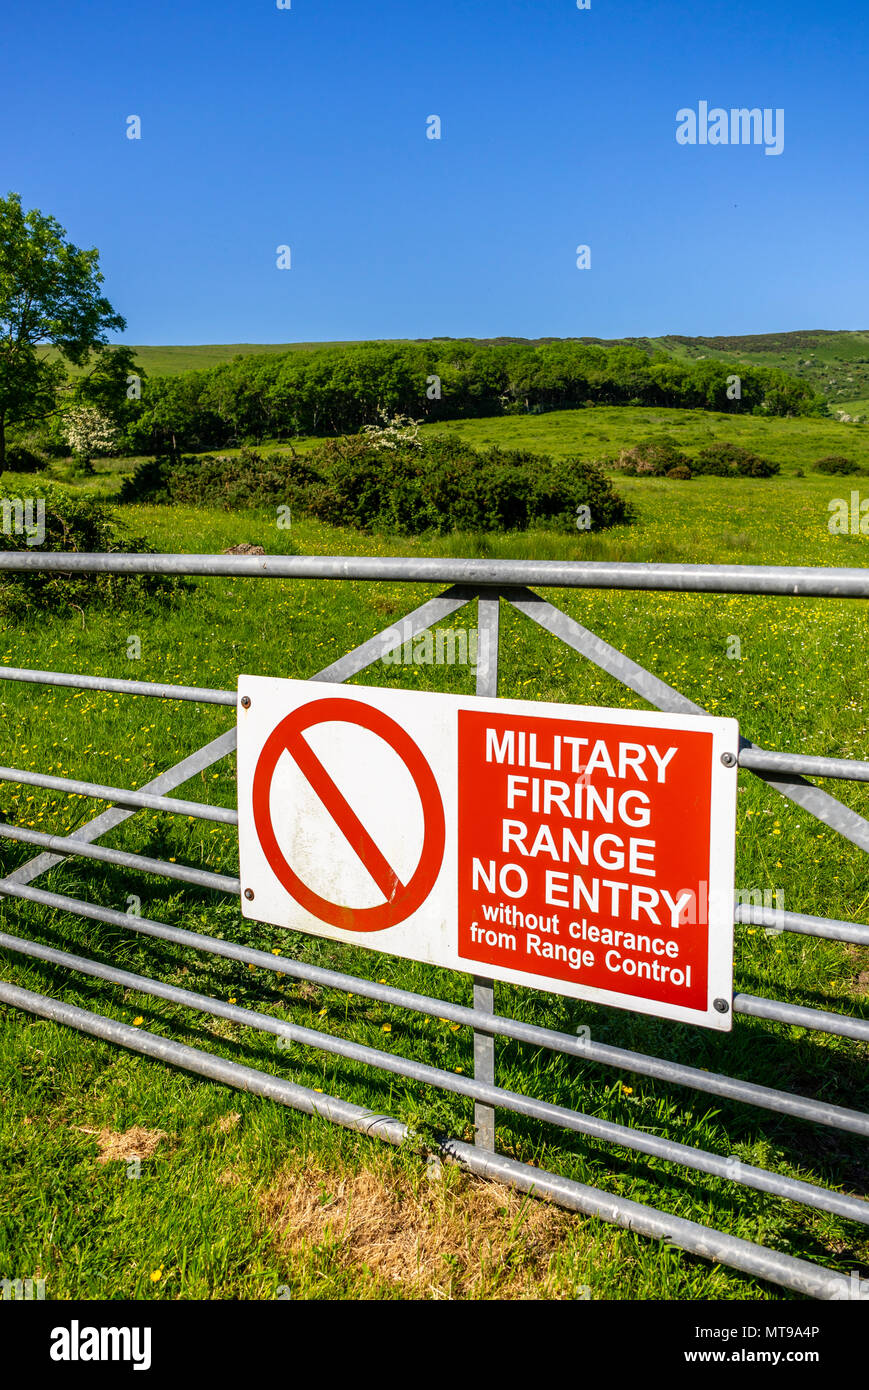 Red No Entry Sign outside the Lulworth Ranges, military firing ranges located between Wareham and Lulworth in Dorset, England, UK - Stock Image